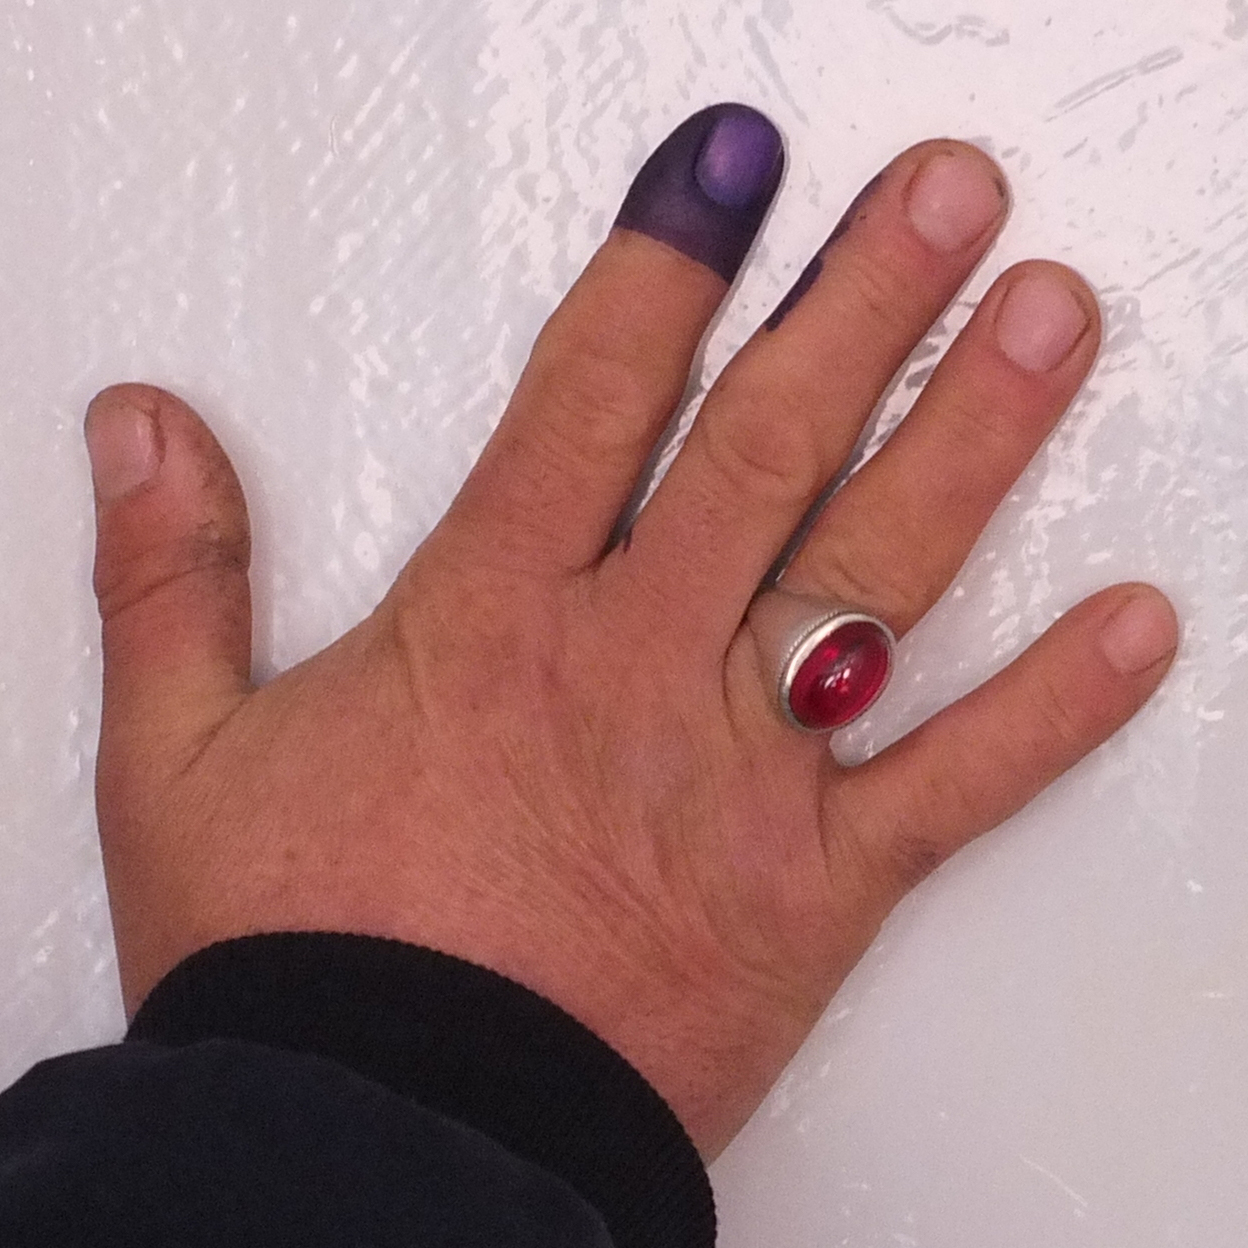 Purple stain proving that someone has voted